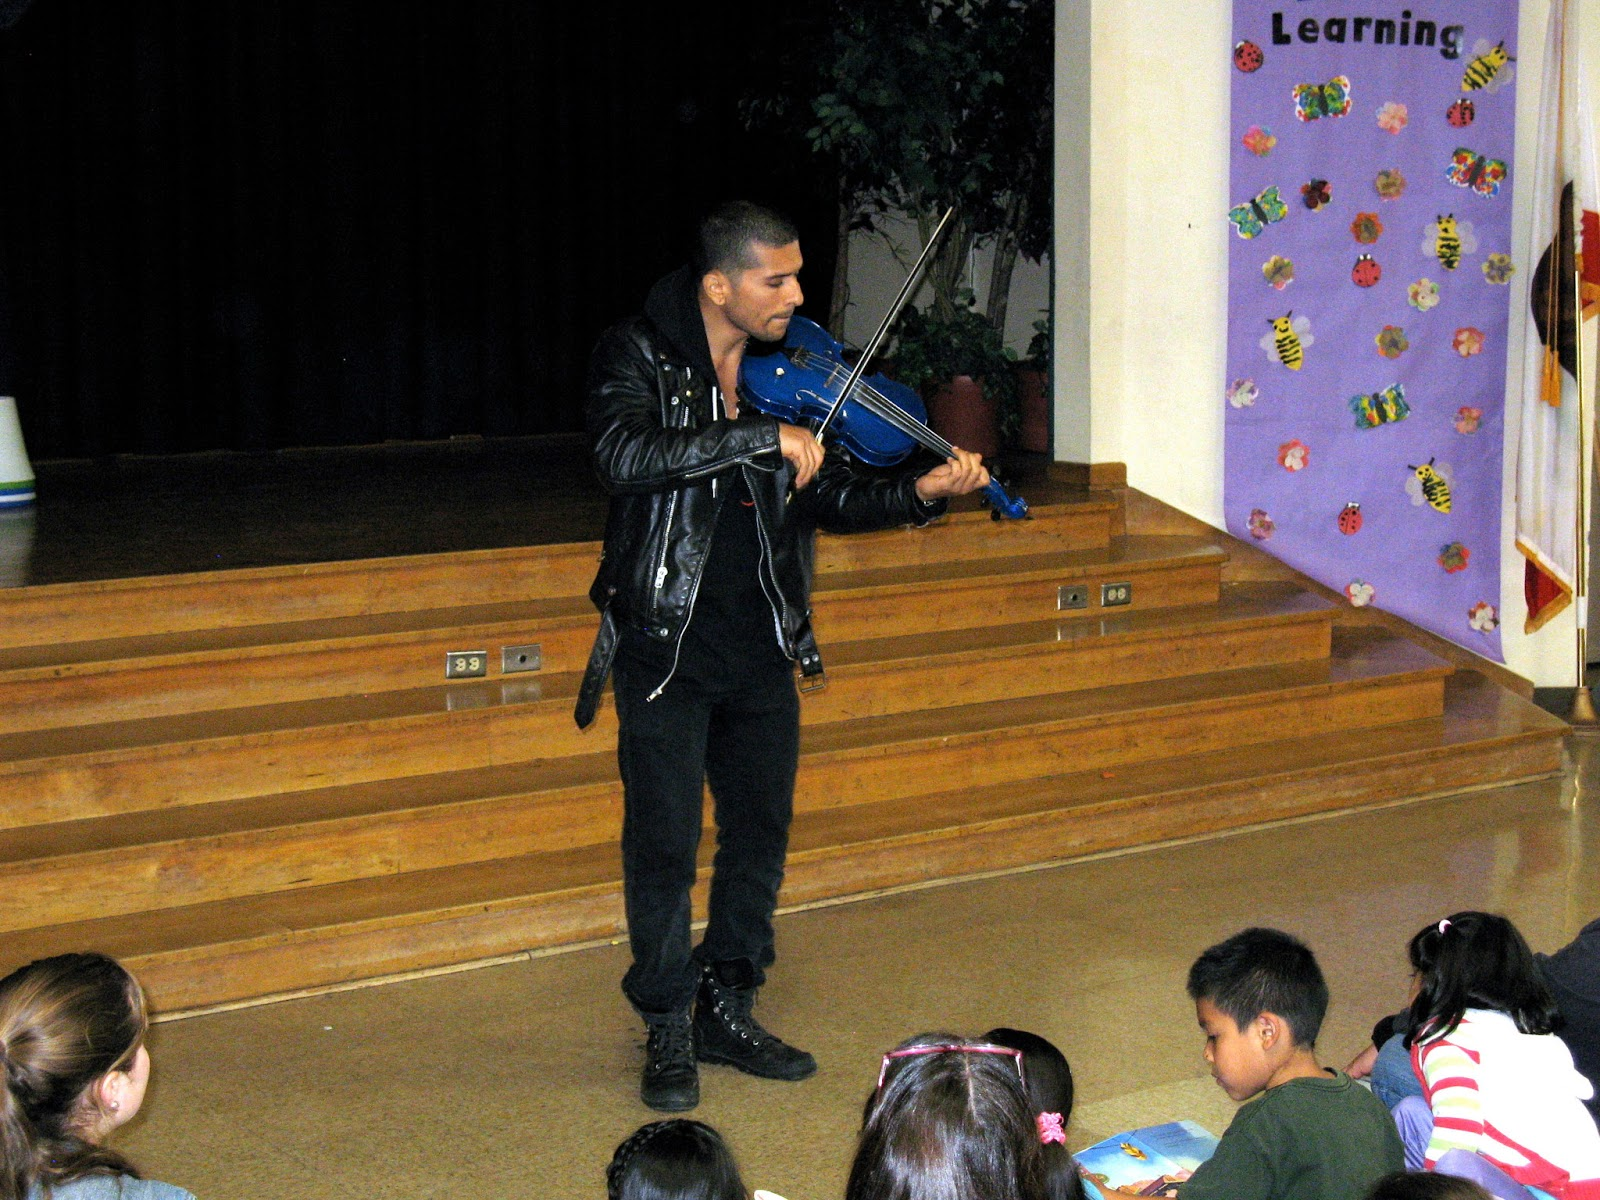 Quetzal Guerrero performs at Magnolia Elementary on March 9th, 2013